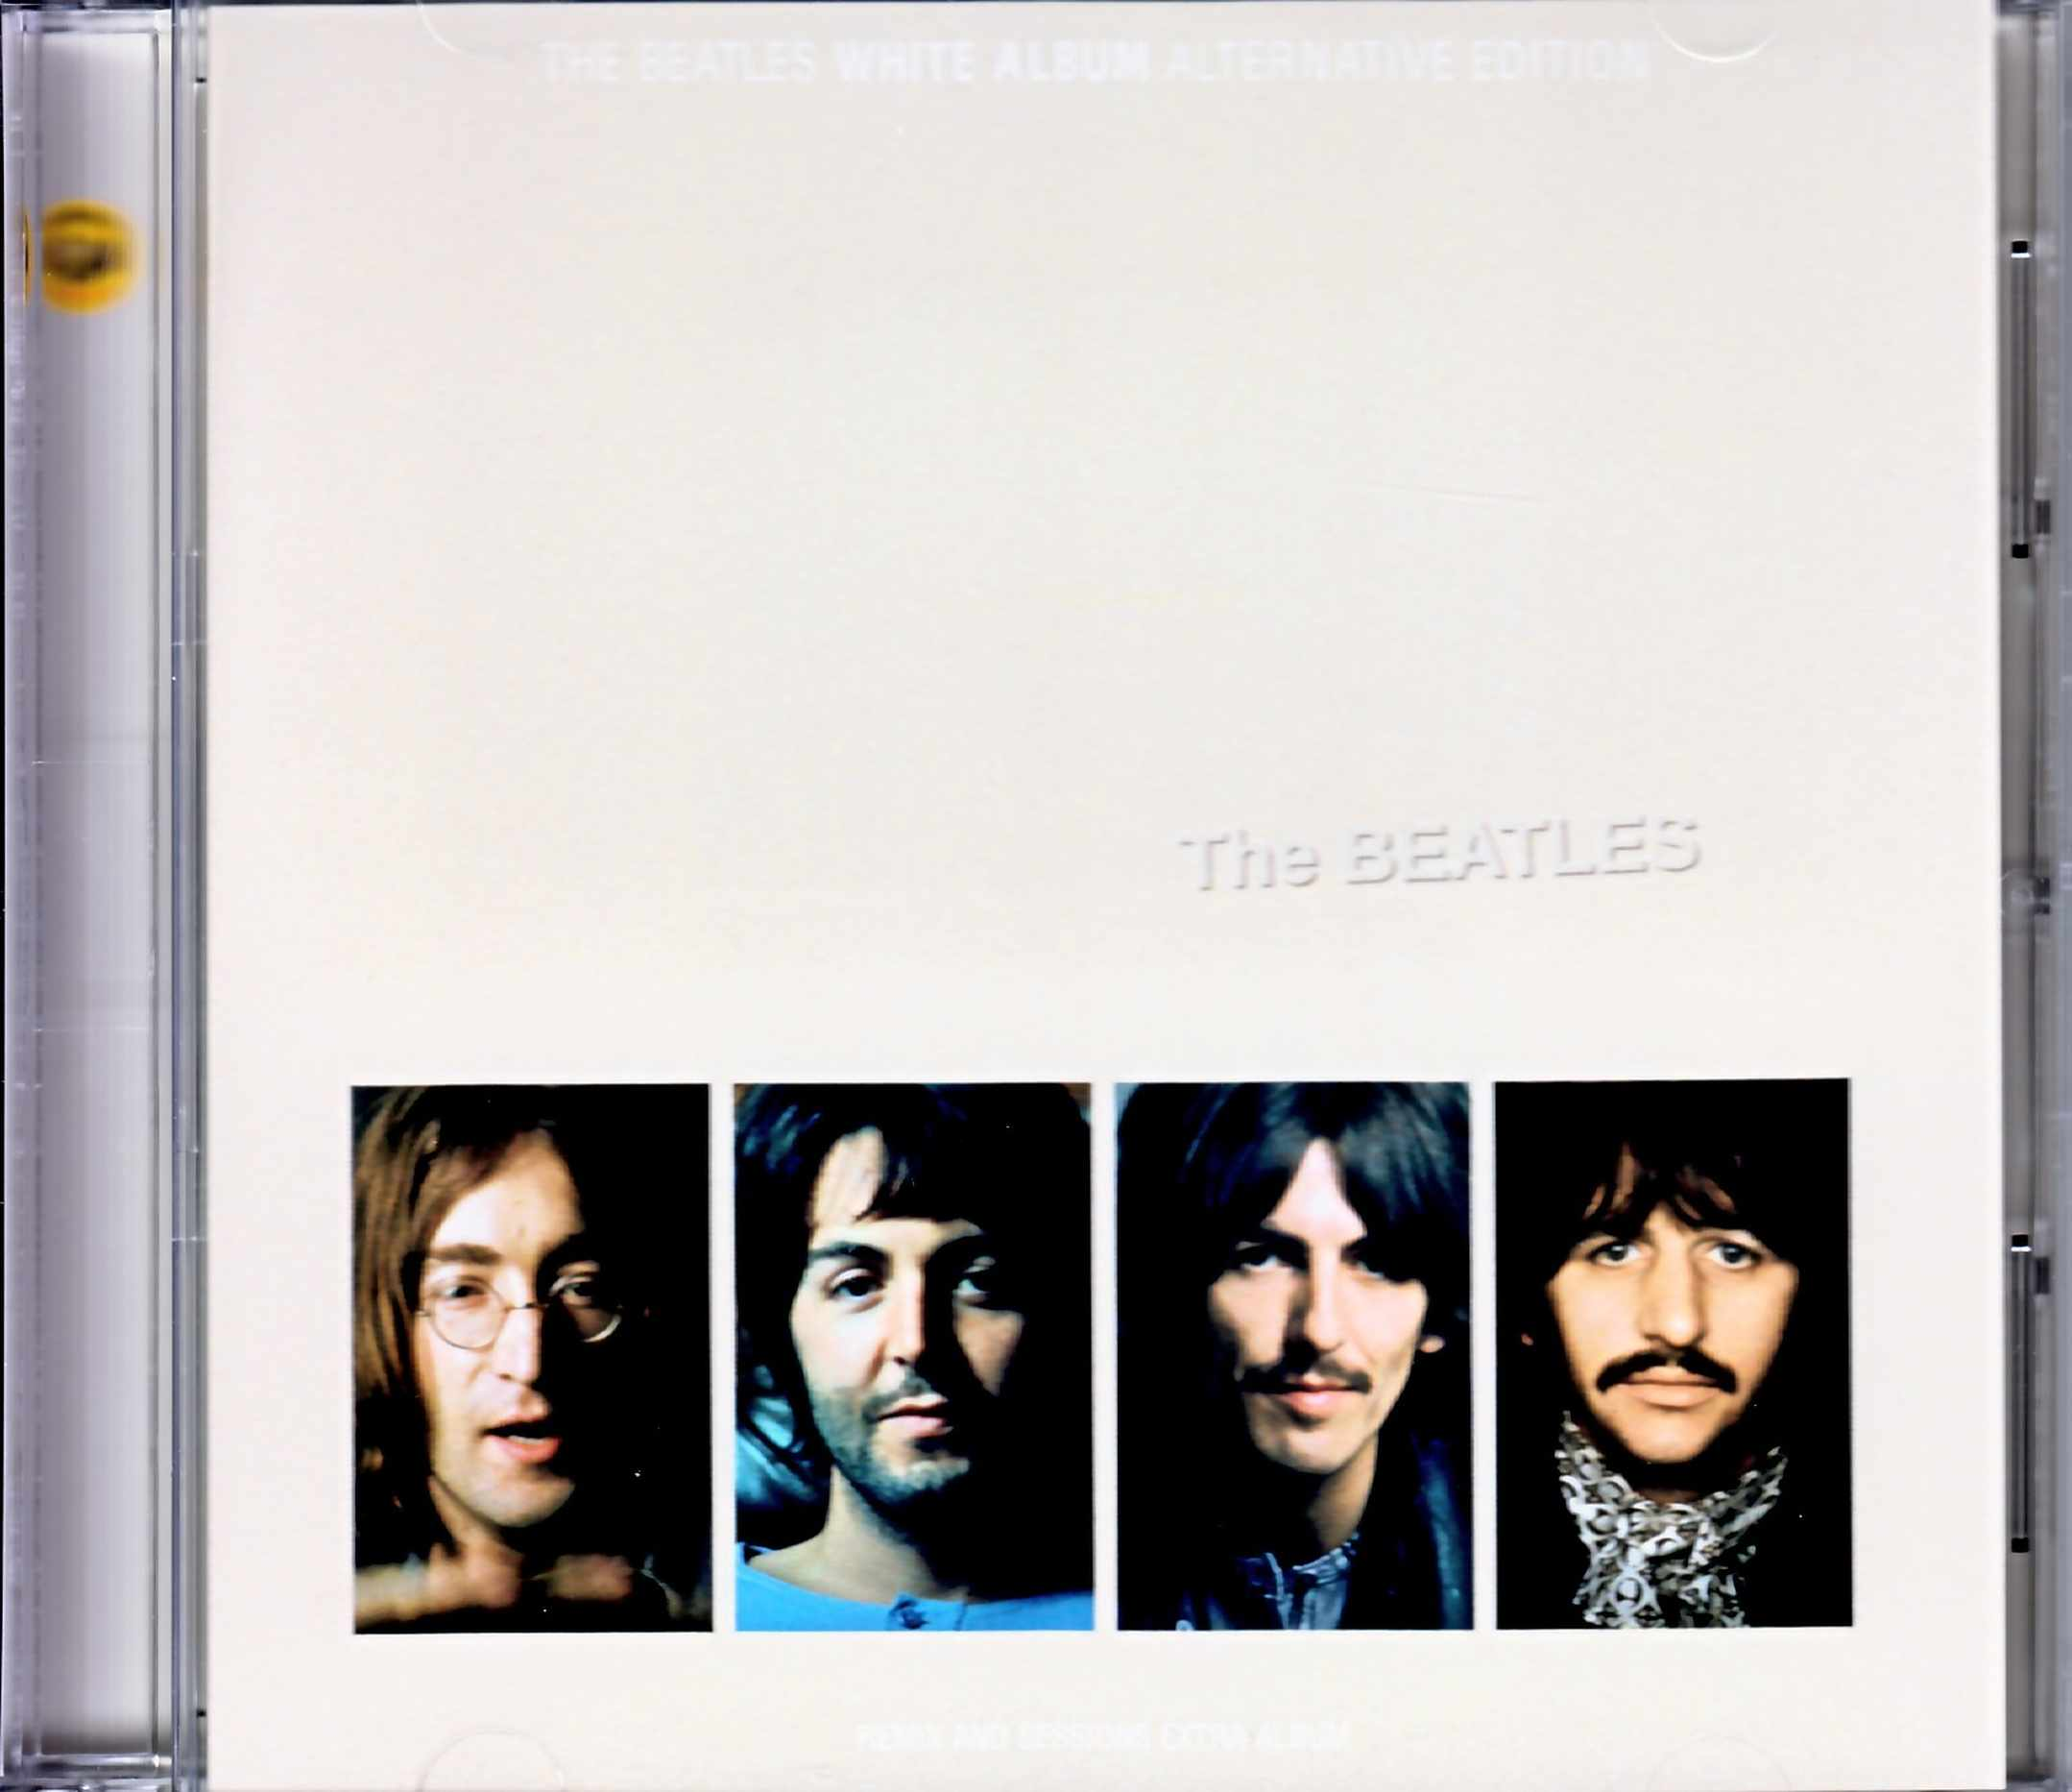 Beatles ビートルズ/ホワイト・アルバム White Album Alternative Edition